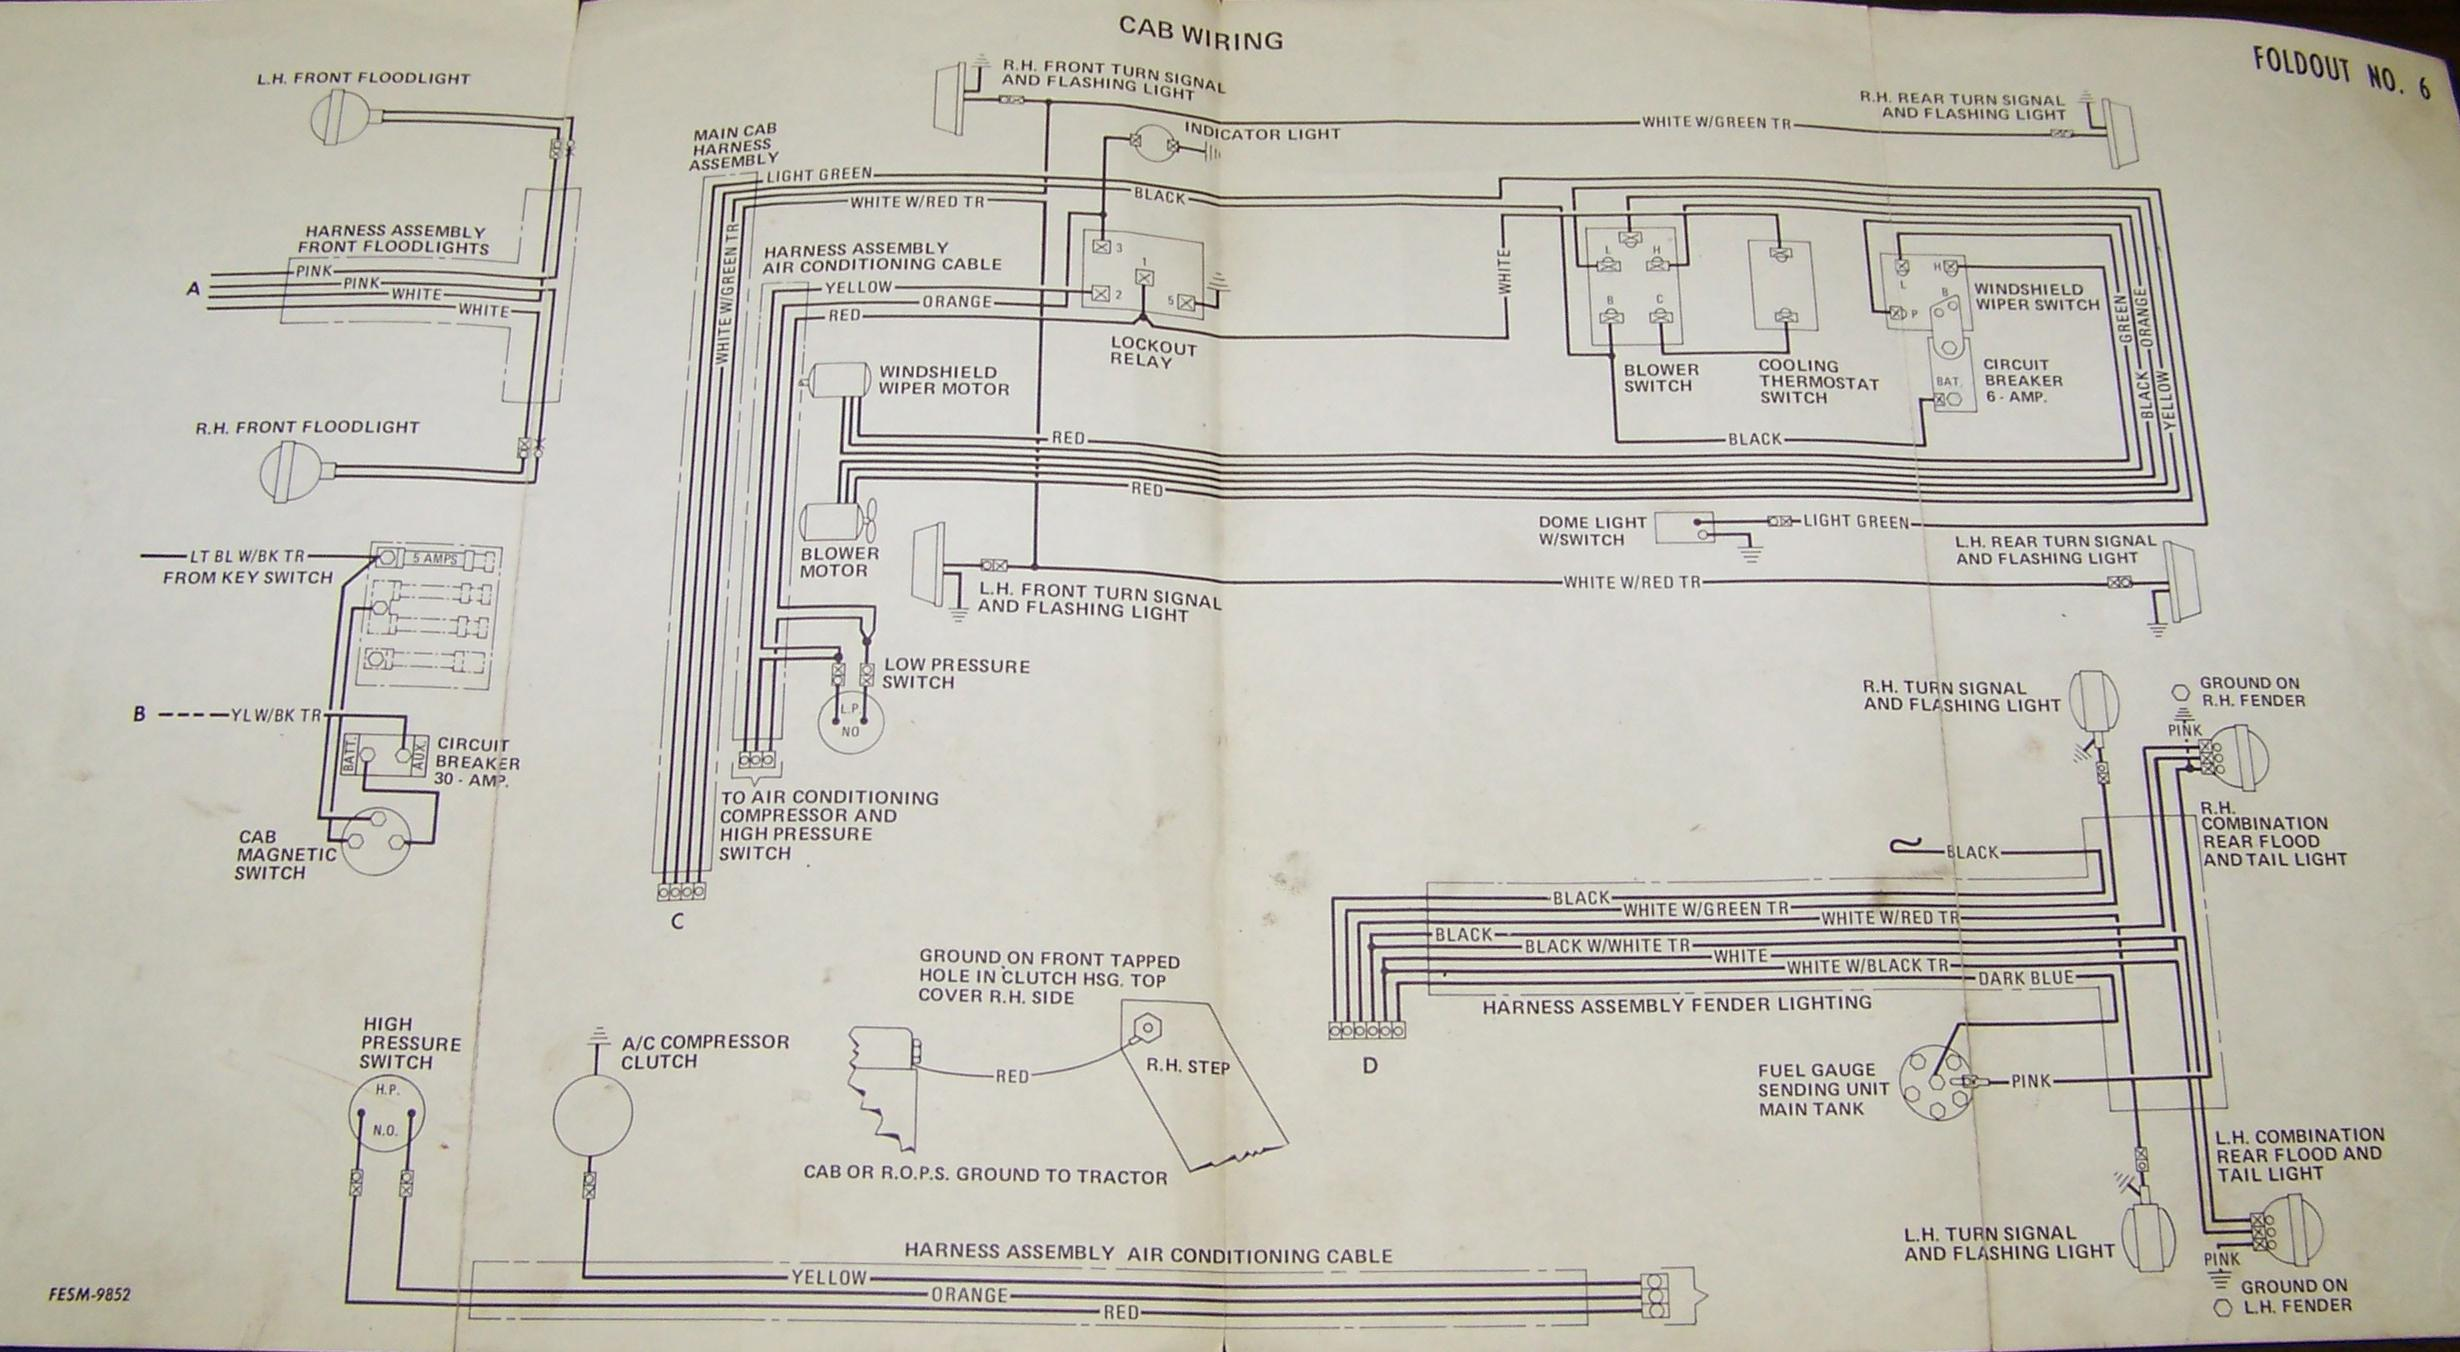 John Deere Headlight Switch Wiring Diagram Farmall 300 Data 350 Schematics 2000 International 4700